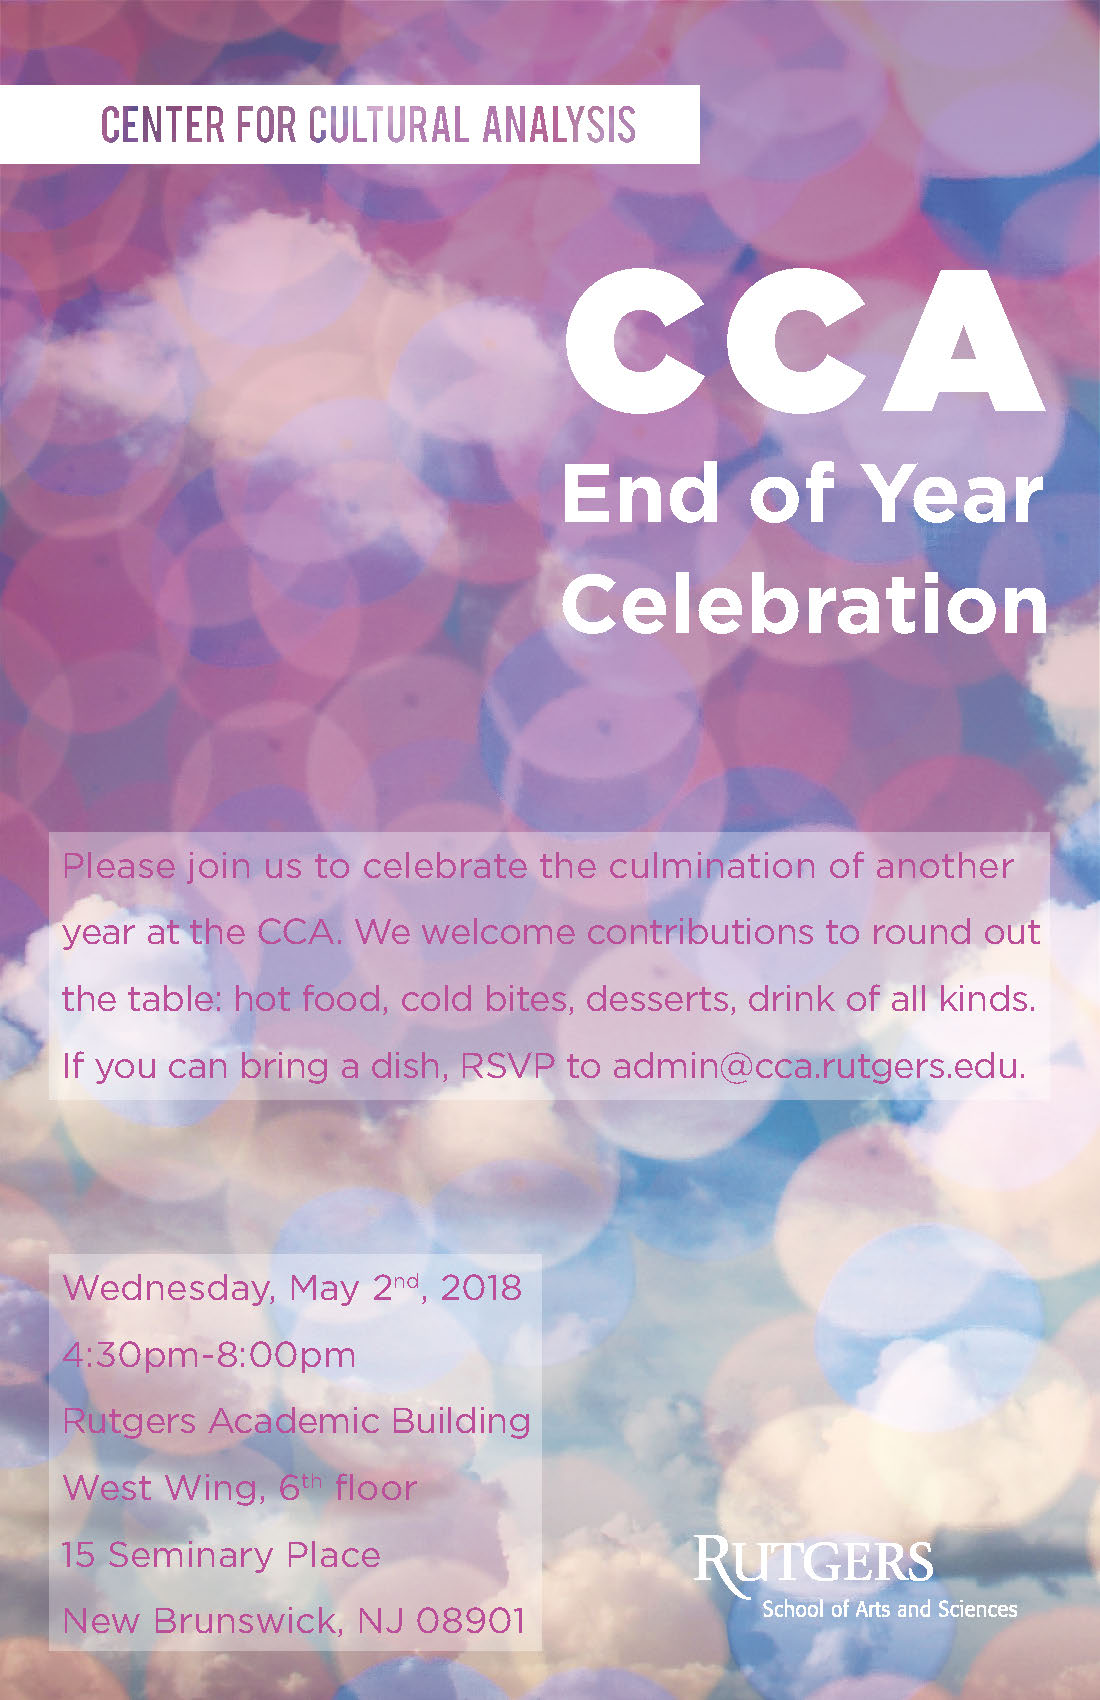 CCA end of year party: 5/2/18, 4:30-8pm, 15 Seminary Place, Academic Building 6th floor